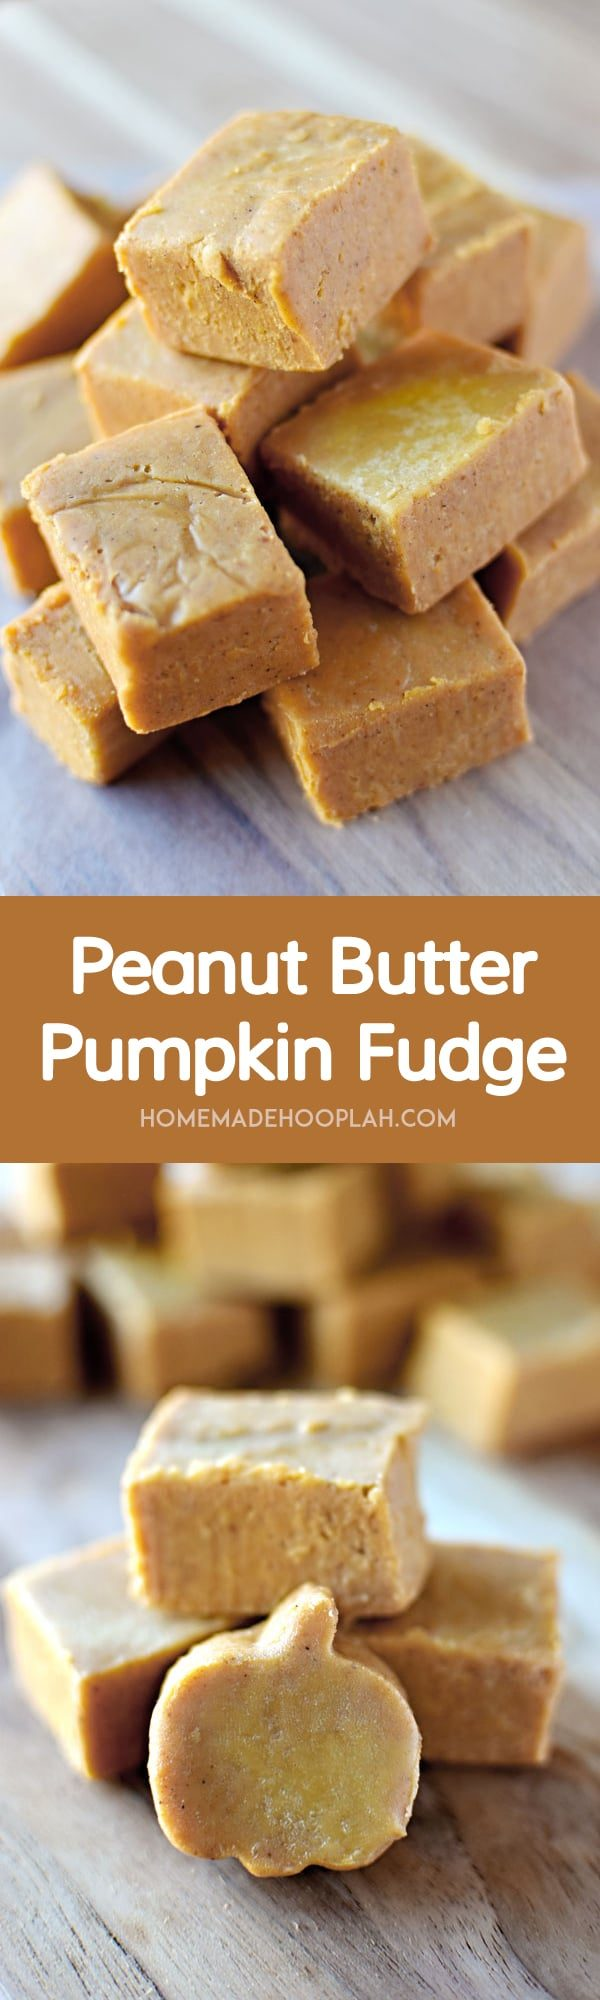 Peanut Butter Pumpkin Fudge! White chocolate fudge laced with creamy peanut butter and festive pumpkin that you can whip together in less than 10 minutes!   HomemadeHooplah.com